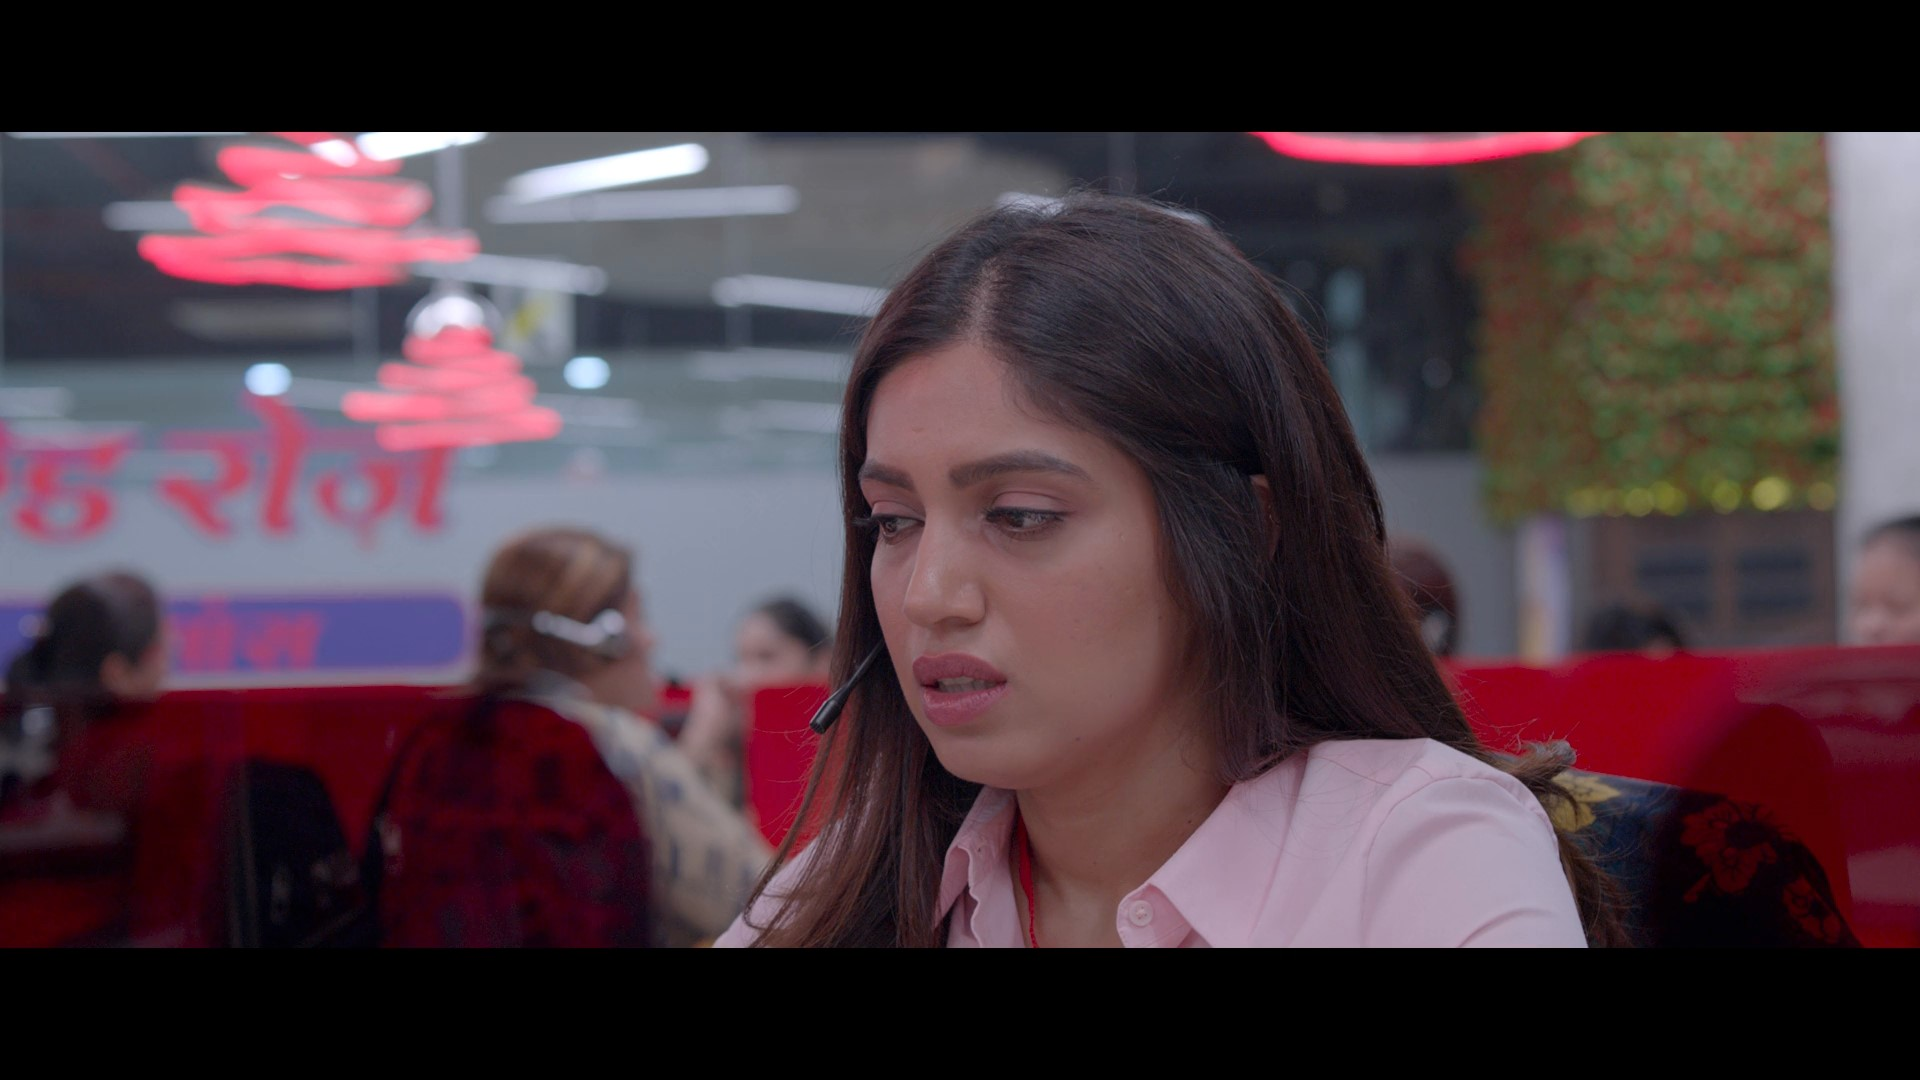 Dolly Kitty Aur Woh Chamakte Sitare (2020) 1080p WEB-DL H264 DDP5 1-DUS Exclusive